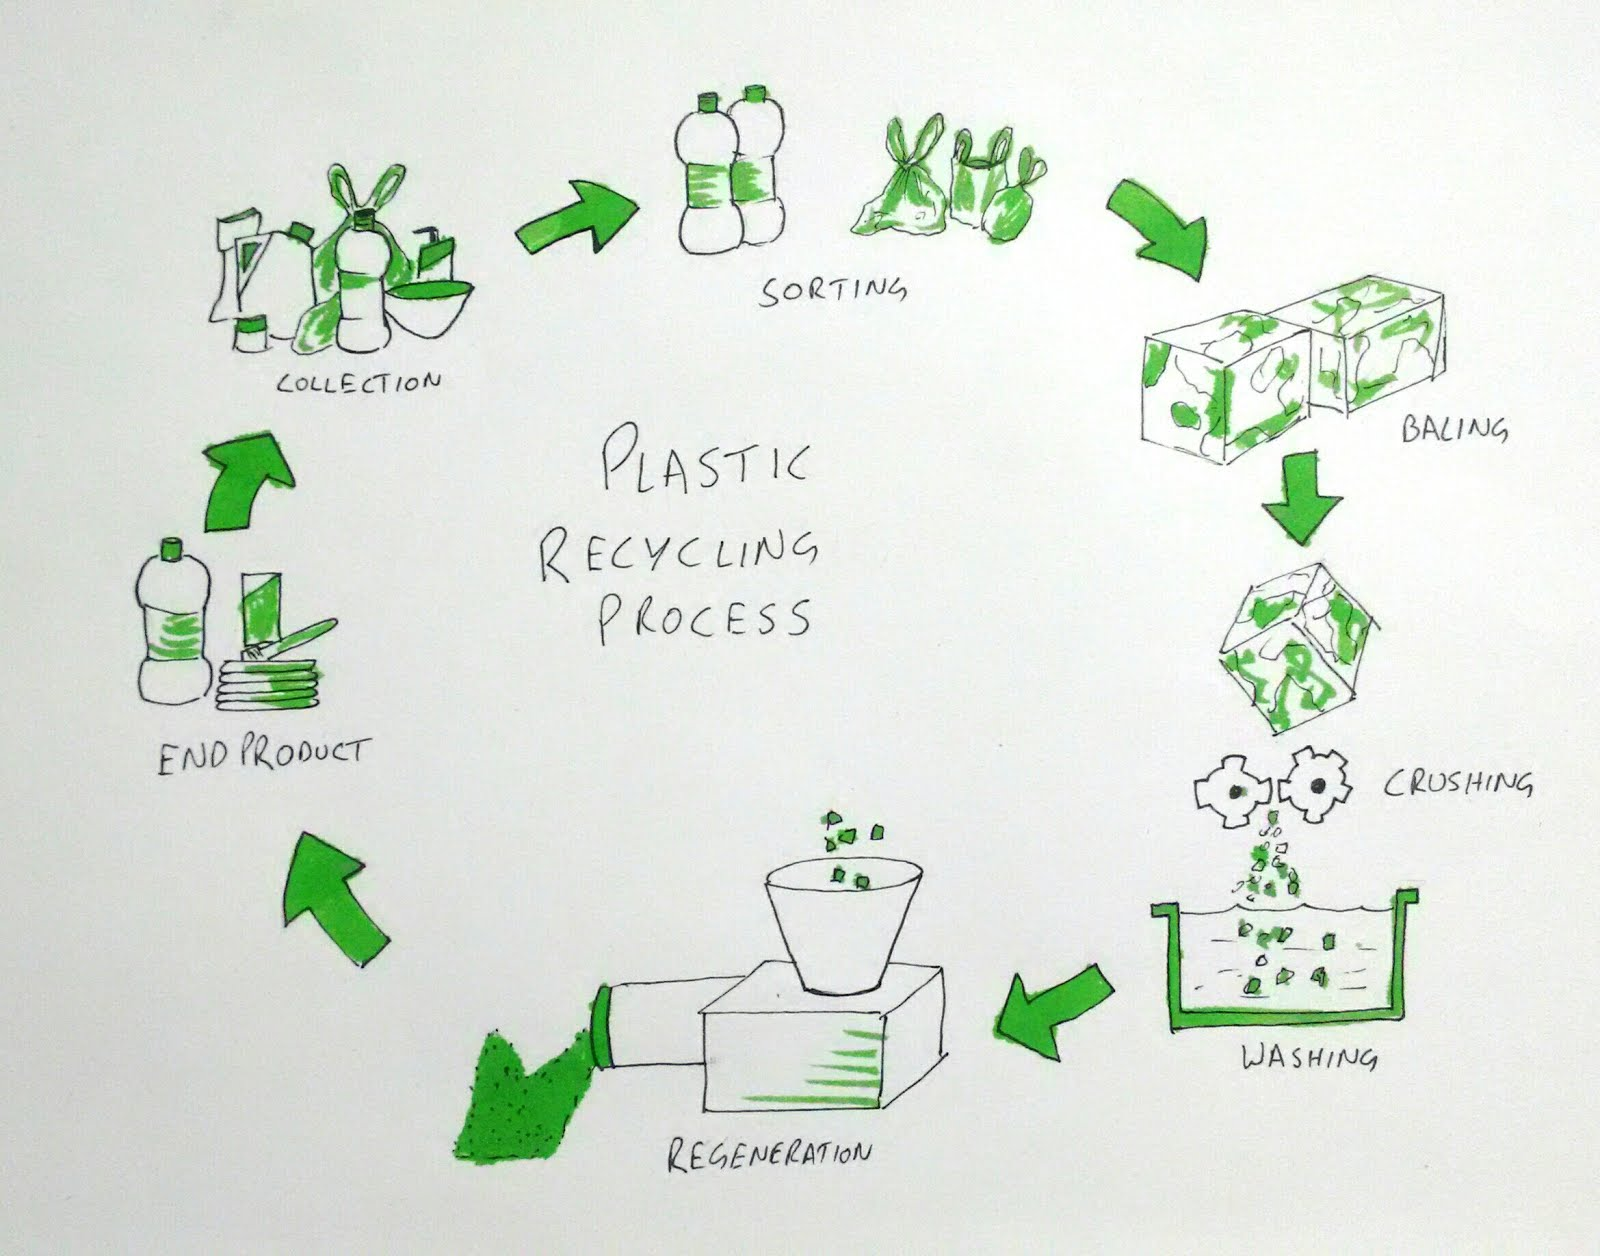 How Is Plastic-Recycling Done In A Plastic Recycling Plant?